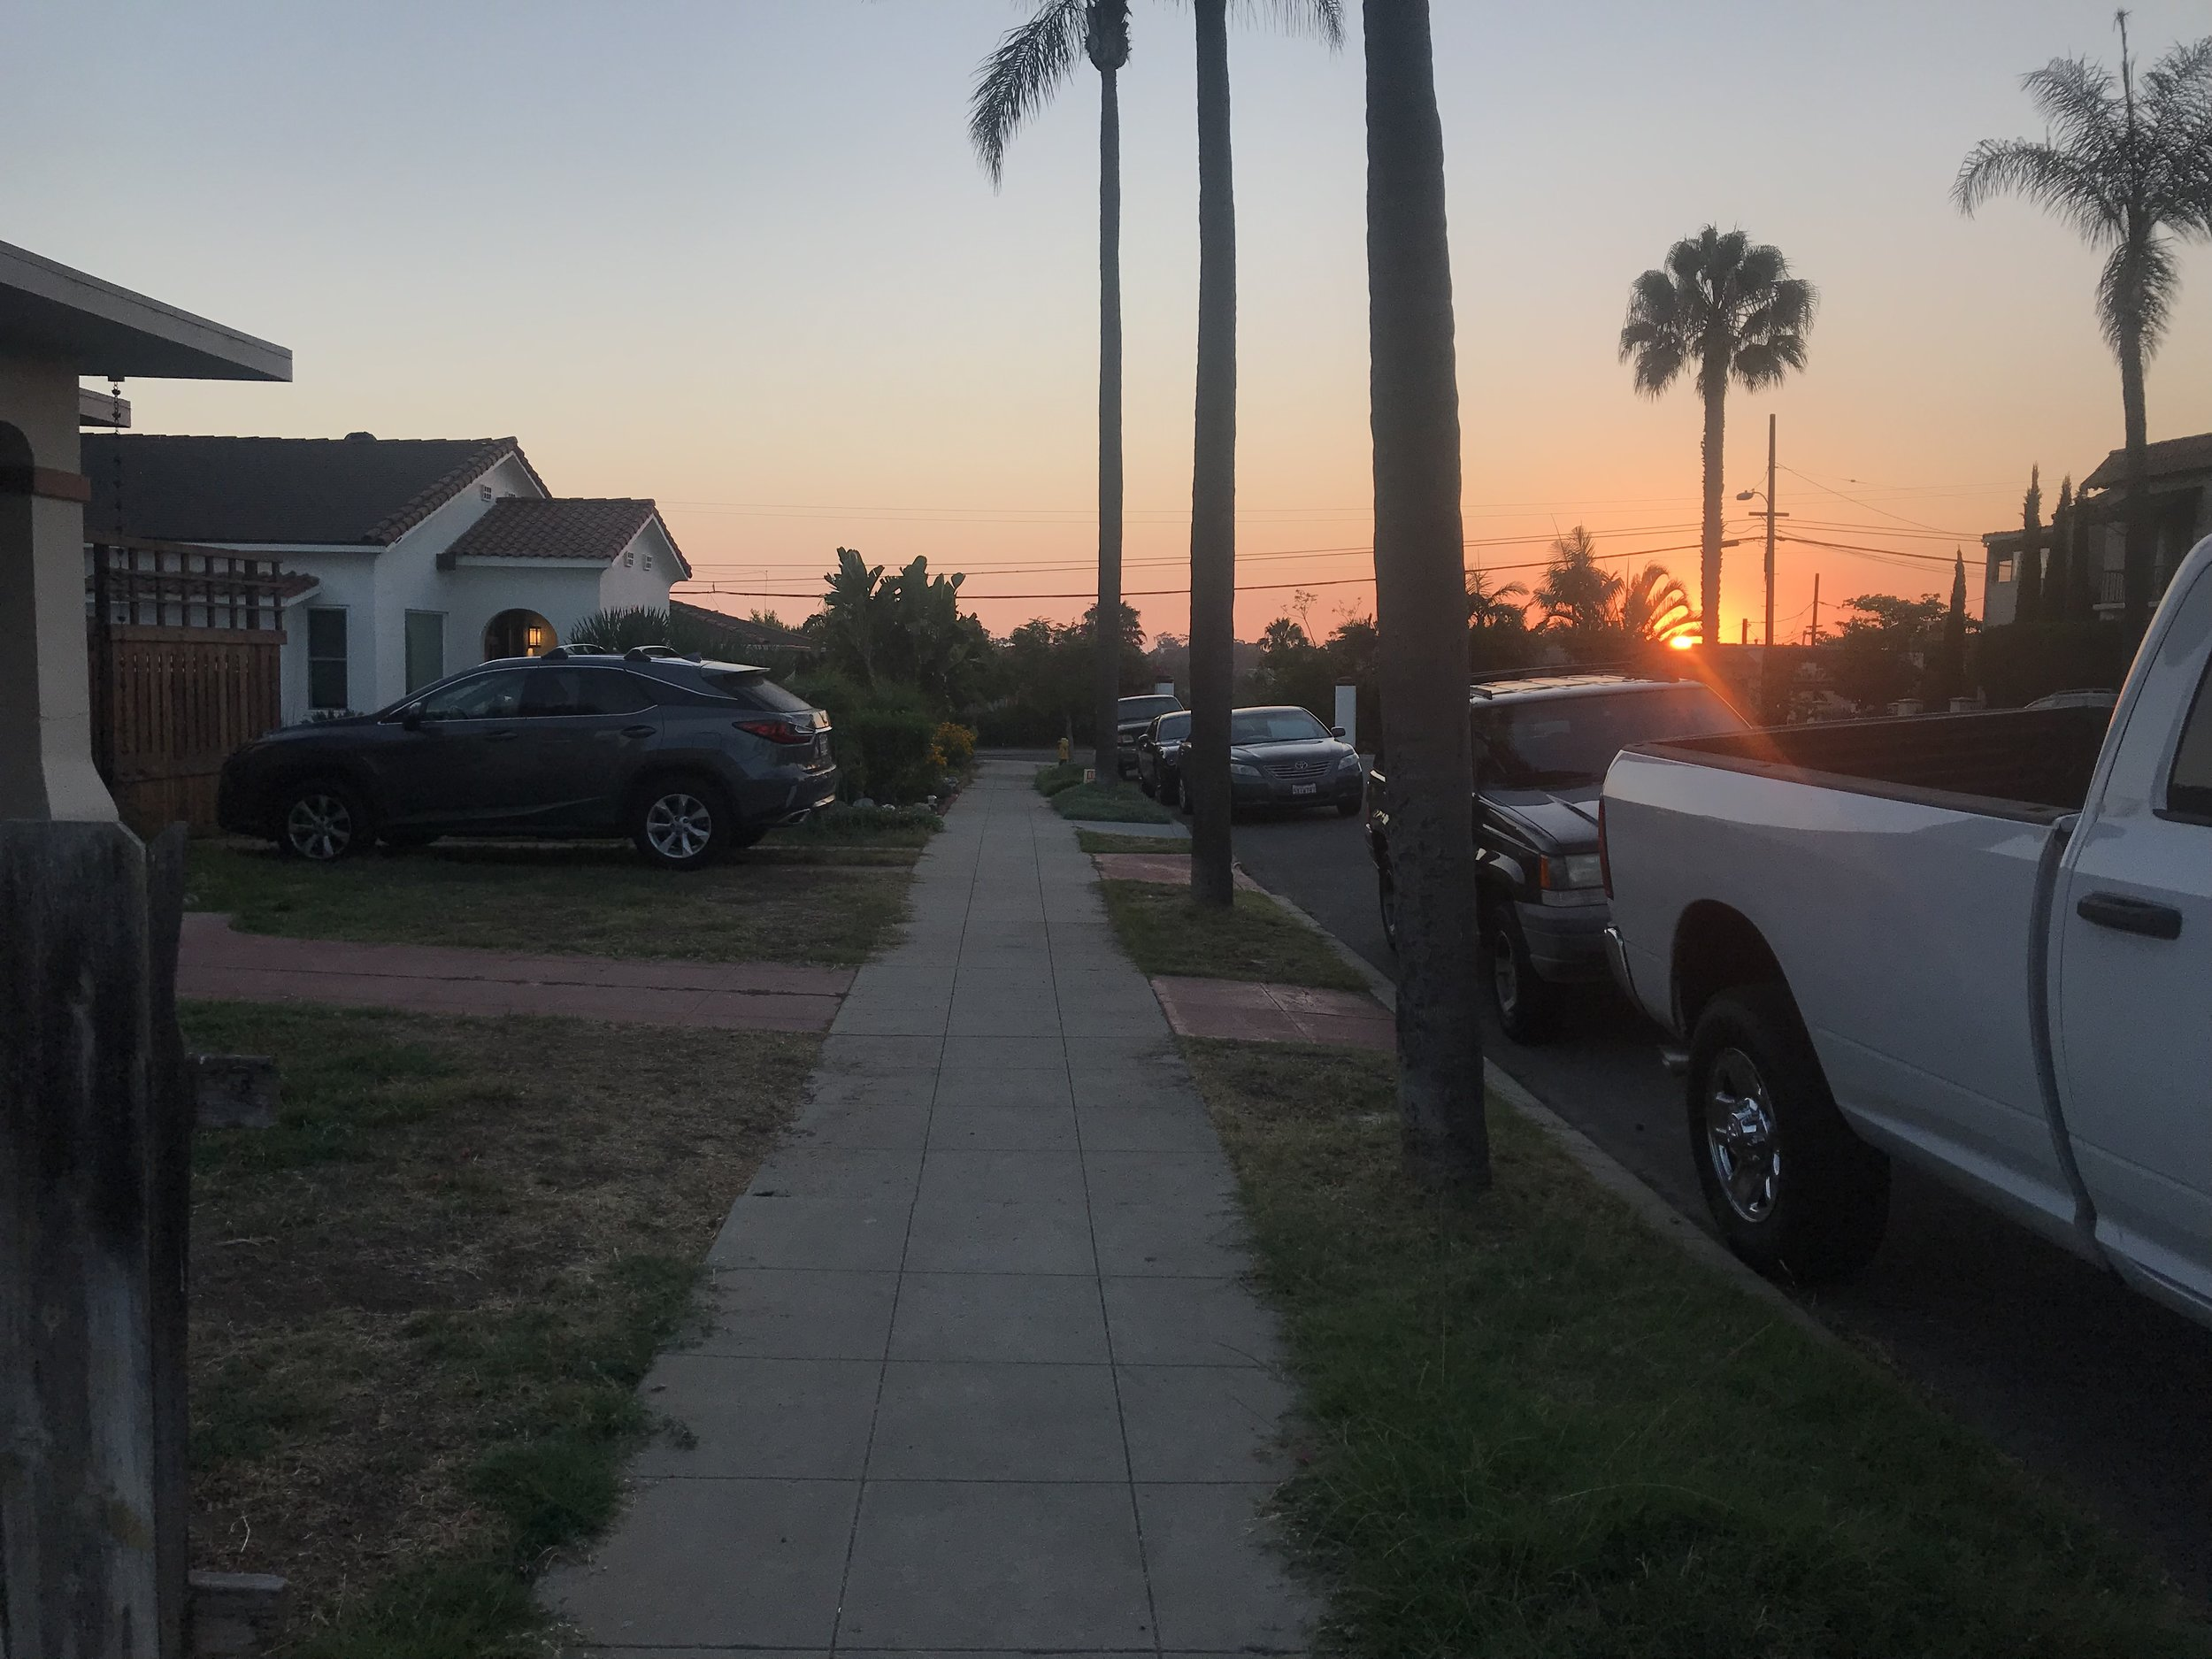 The neighborhood we're staying in in San Diego.